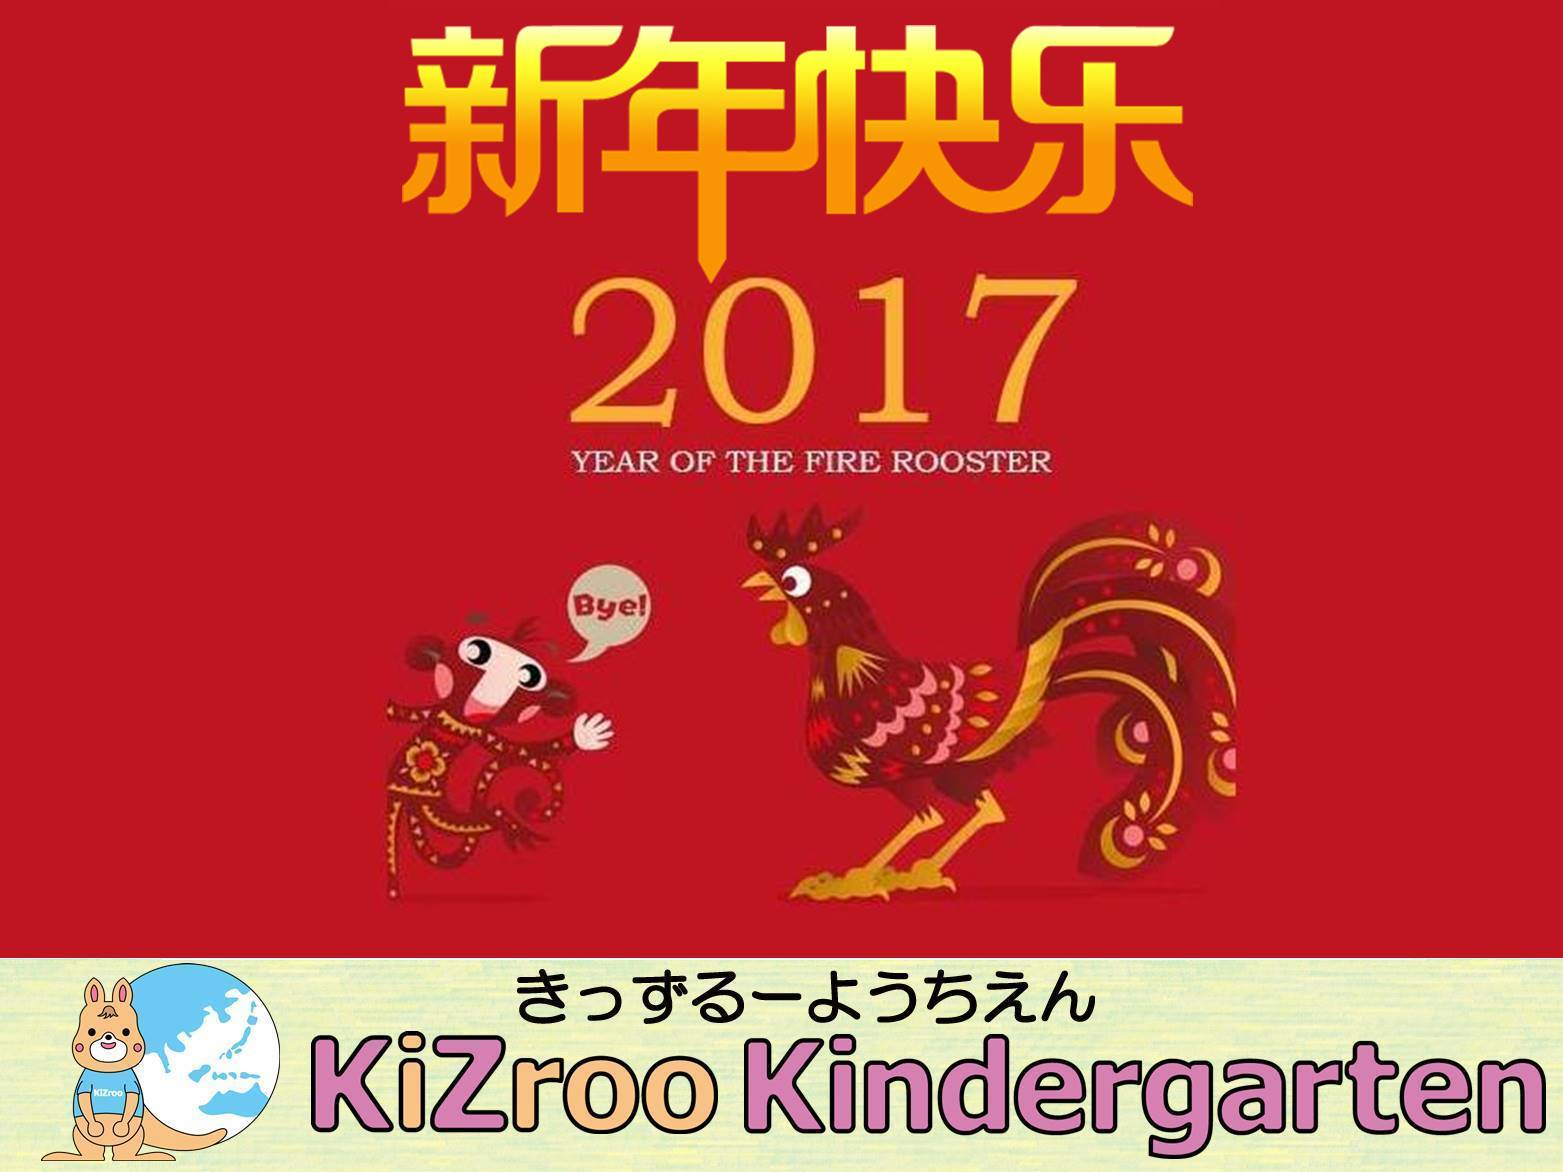 Kizroo Kindergarten Happy Chinese New Year